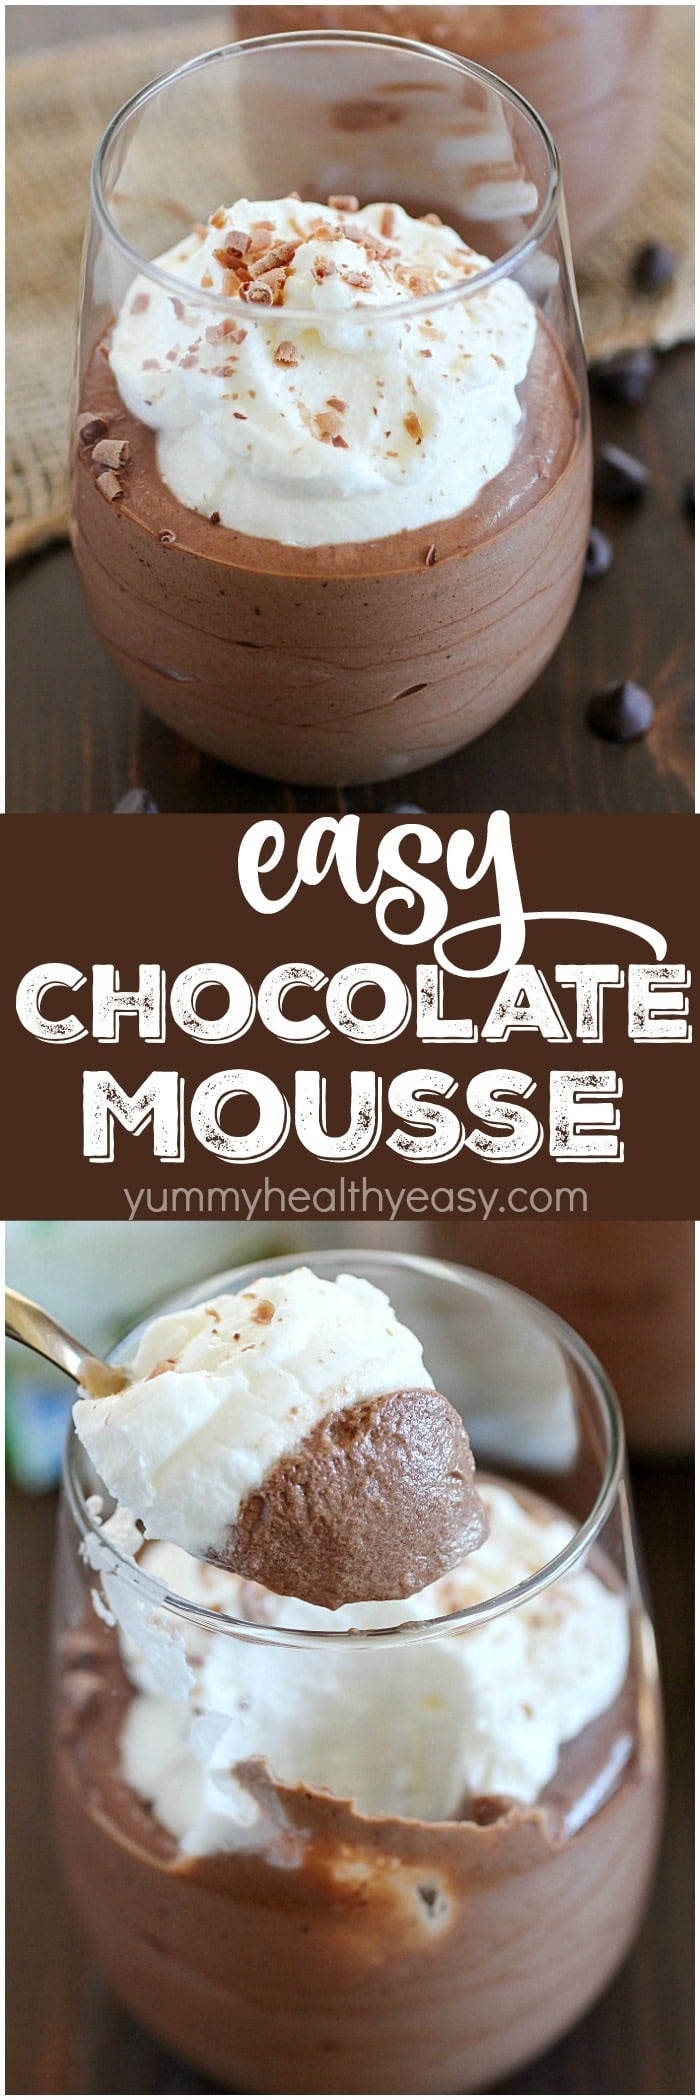 Easy Chocolate Mousse Recipe - Yummy Healthy Easy